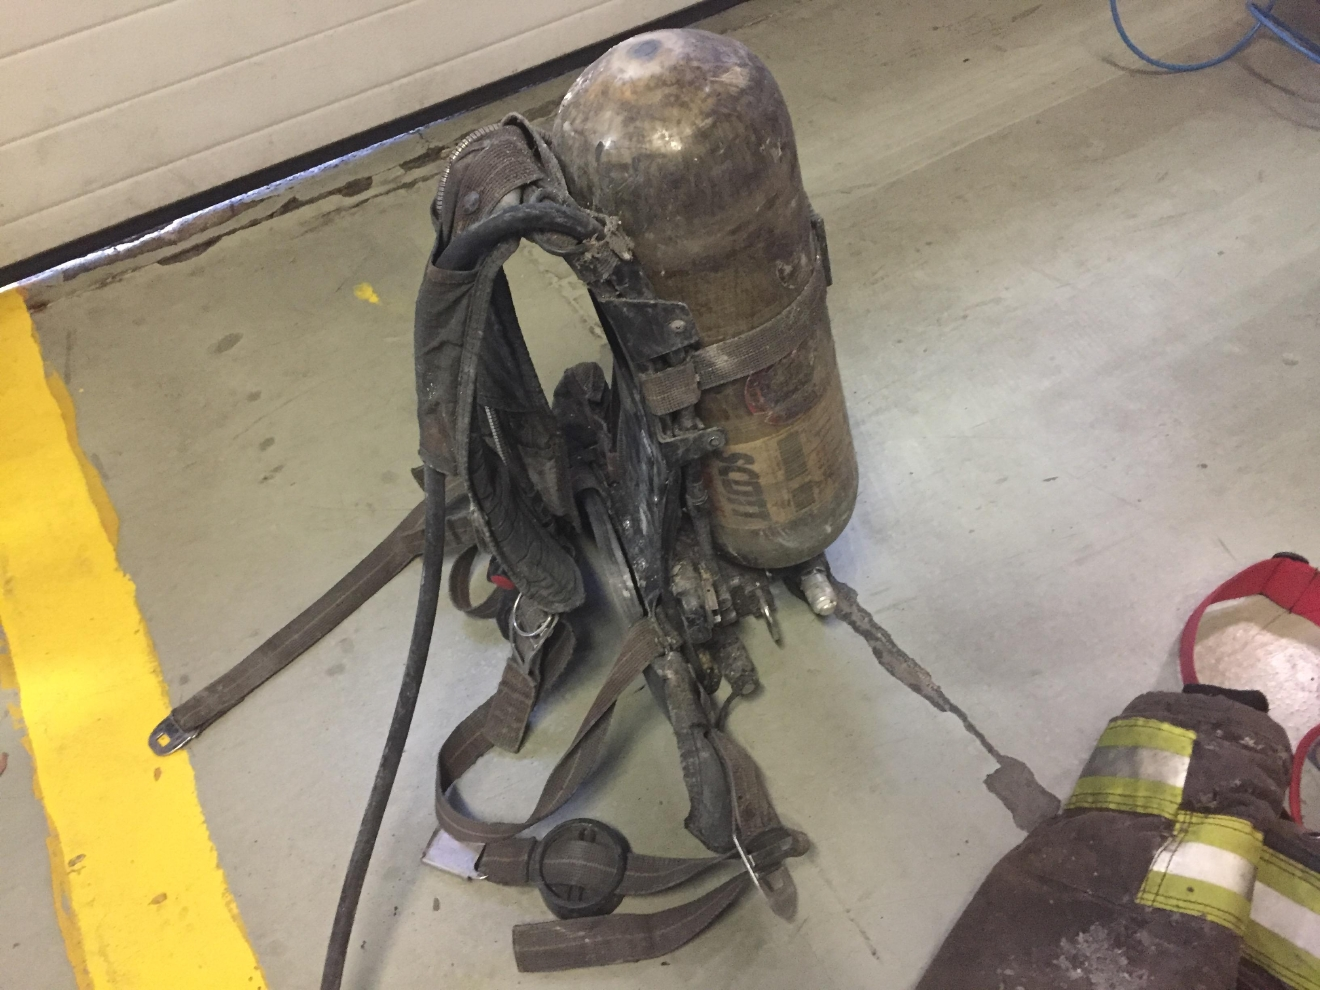 The Public Safety Millage would purchase new equipment for fire fighters.